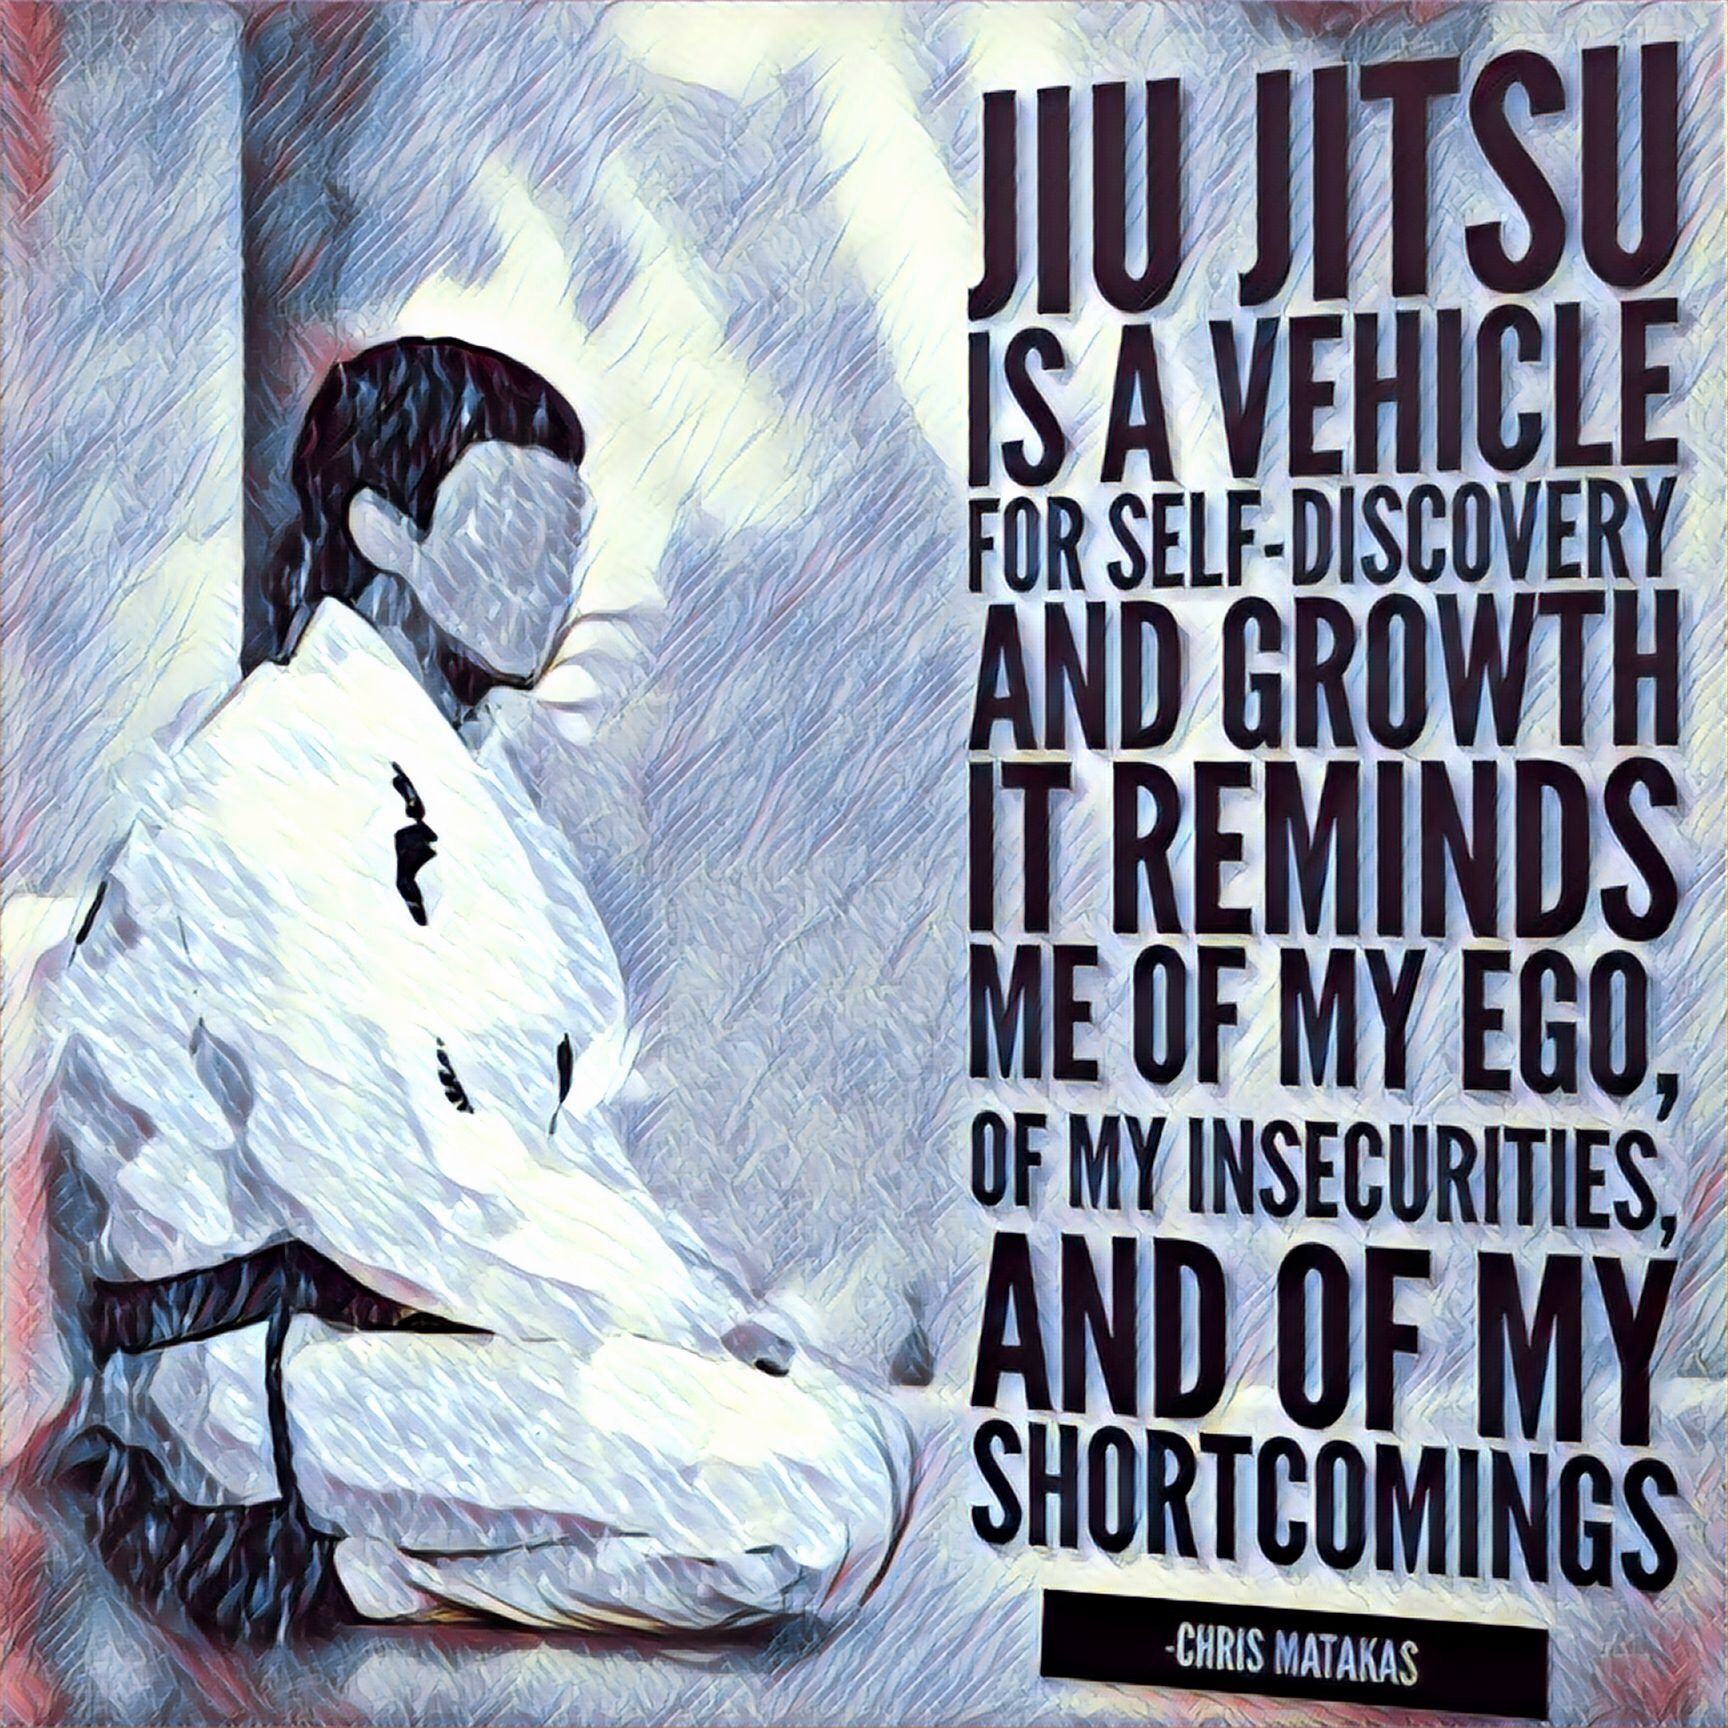 55 Best Bjj Mma Images On Pinterest – Daily Motivational Quotes